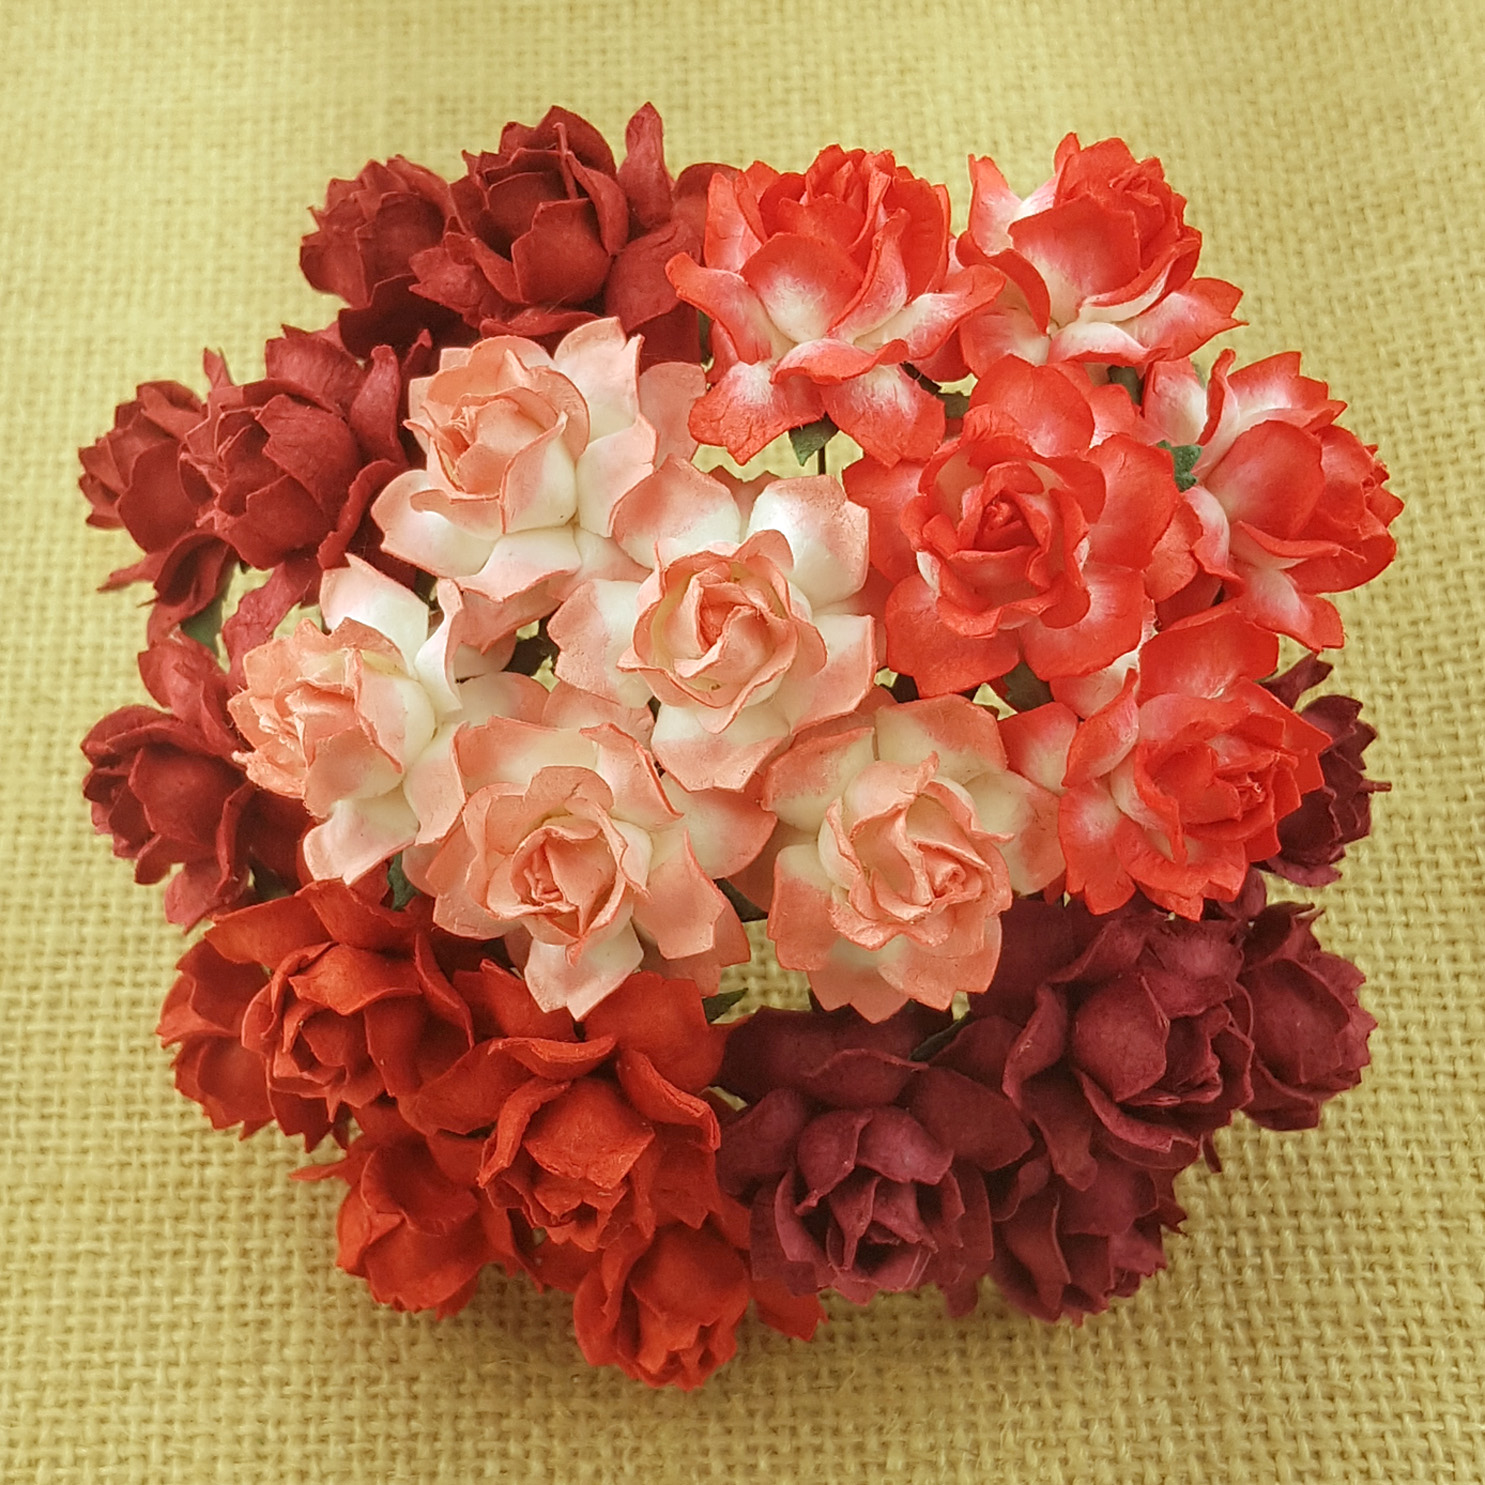 50 MIXED RED TONE MULBERRY PAPER COTTAGE ROSES - 5 COLOR